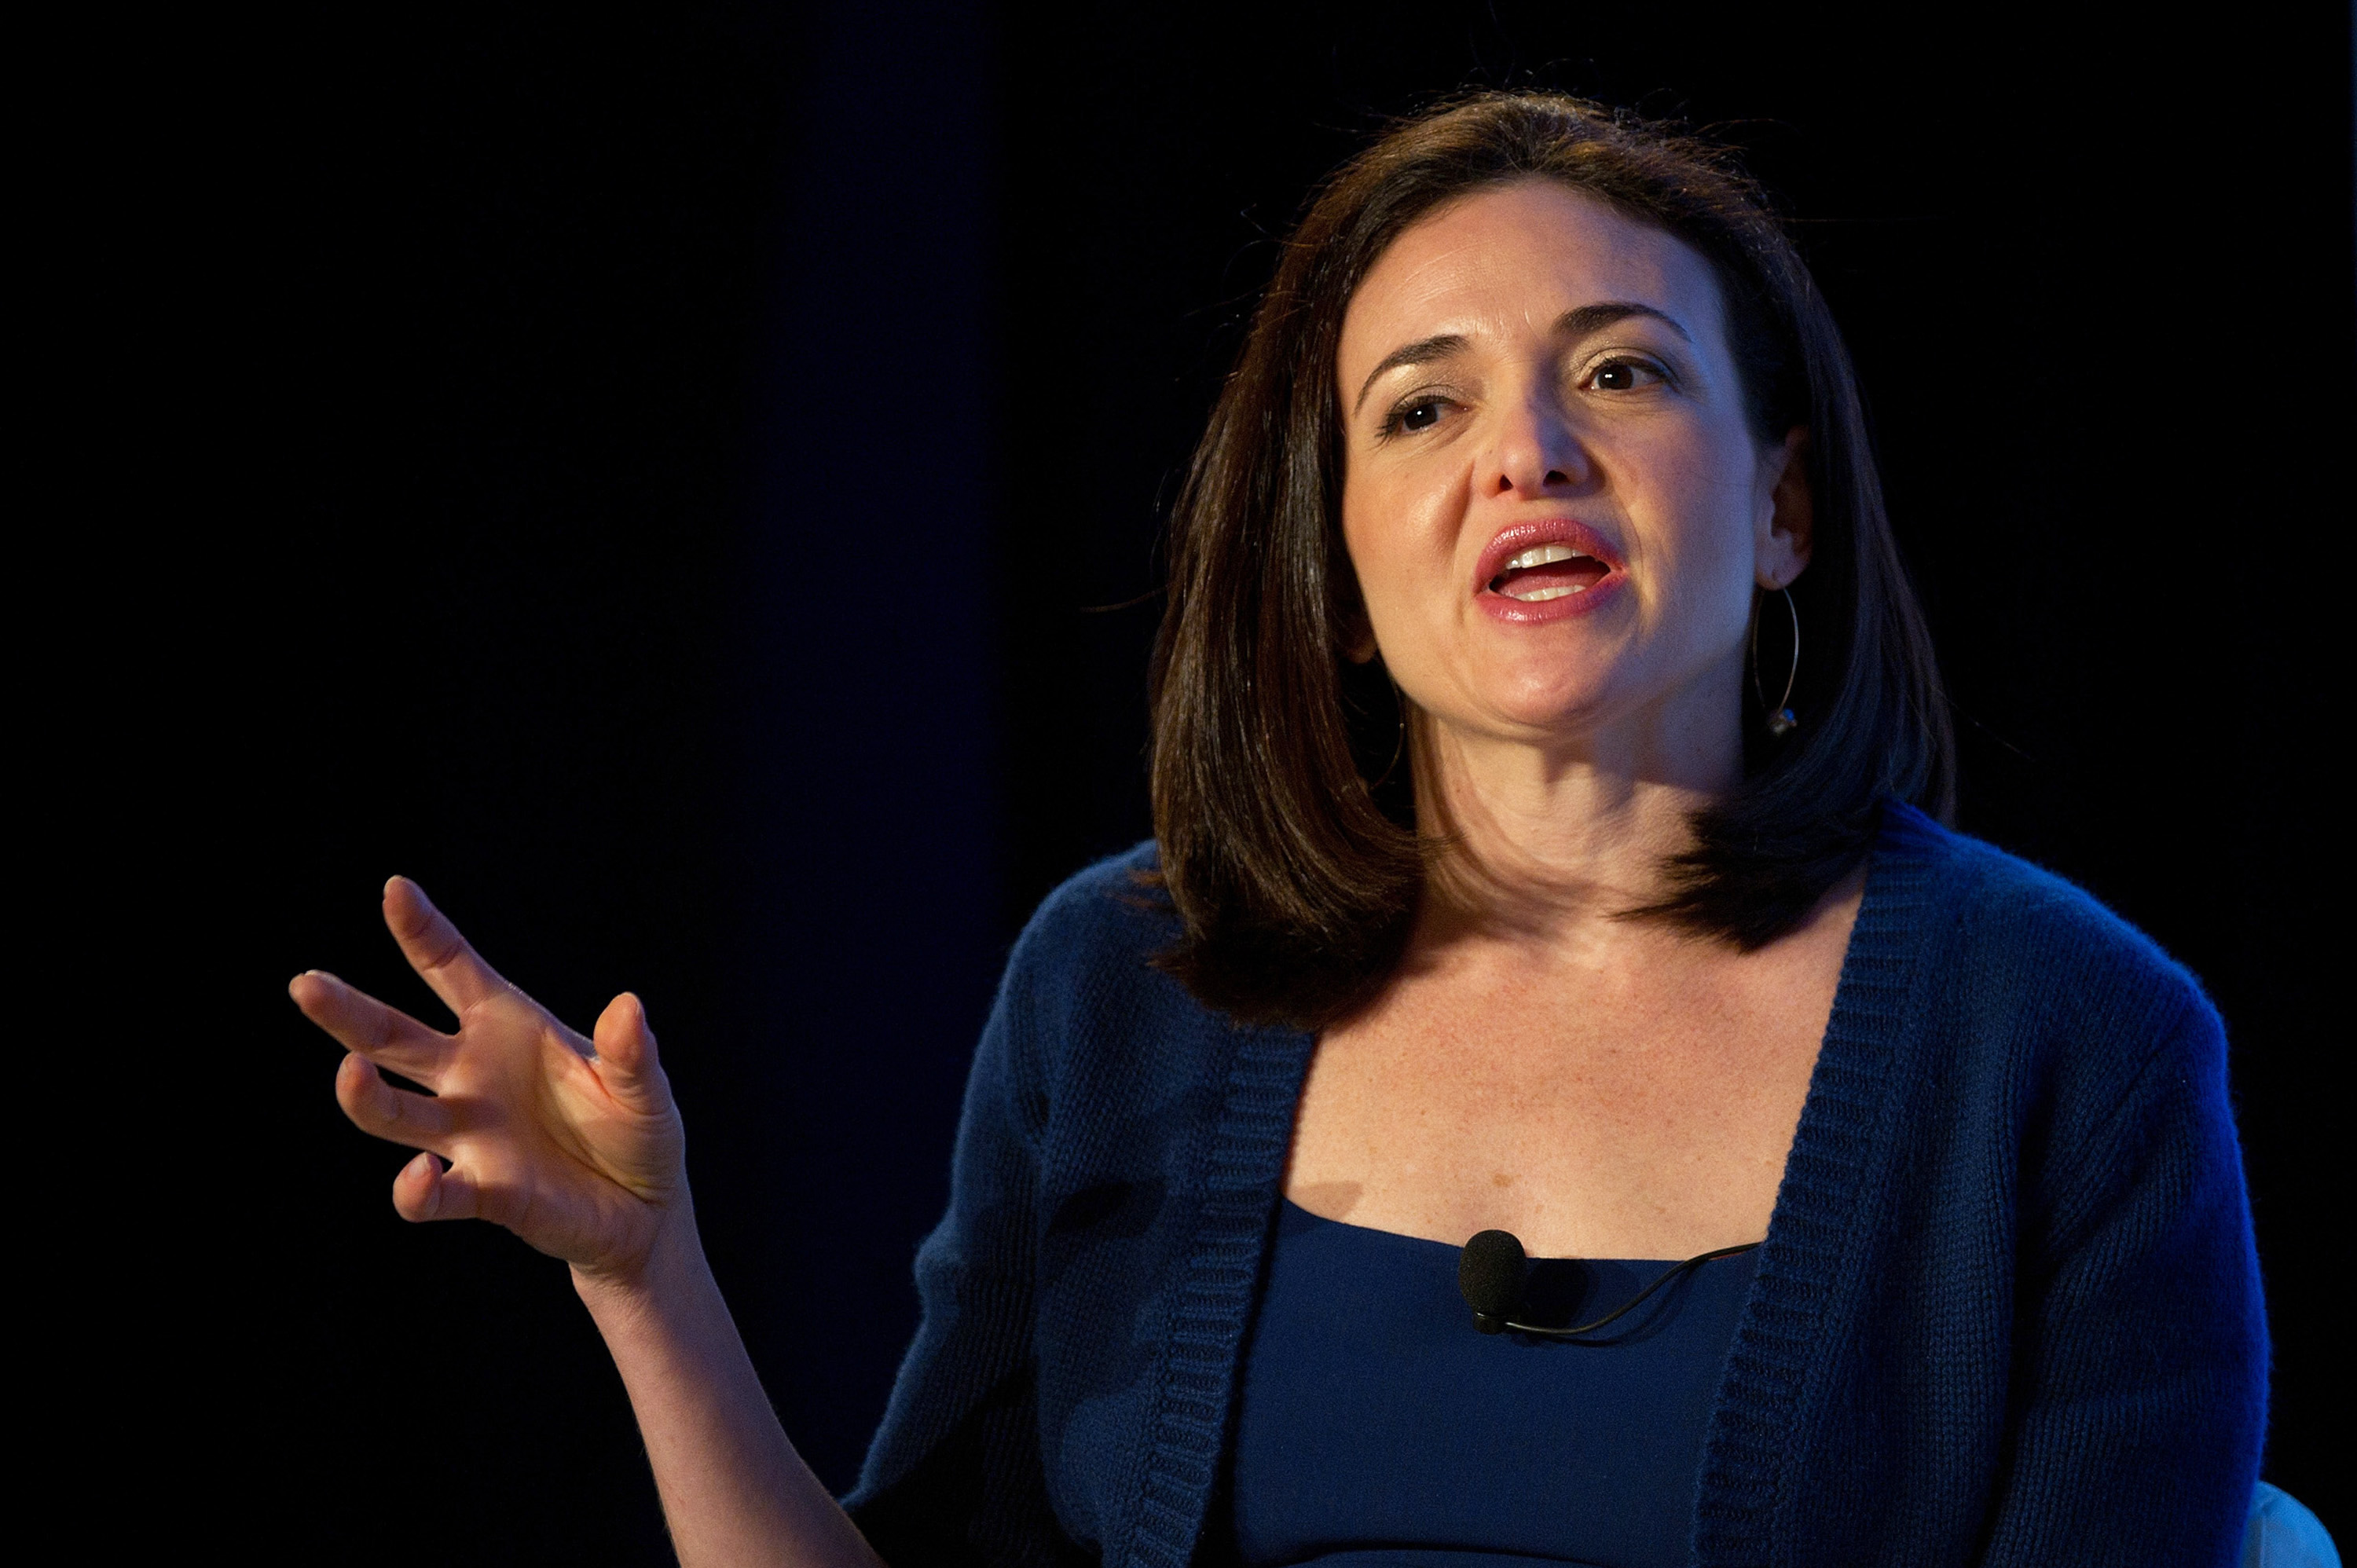 Just Sheryl Sandberg once again dropping some incredibly important lady-tech wisdom